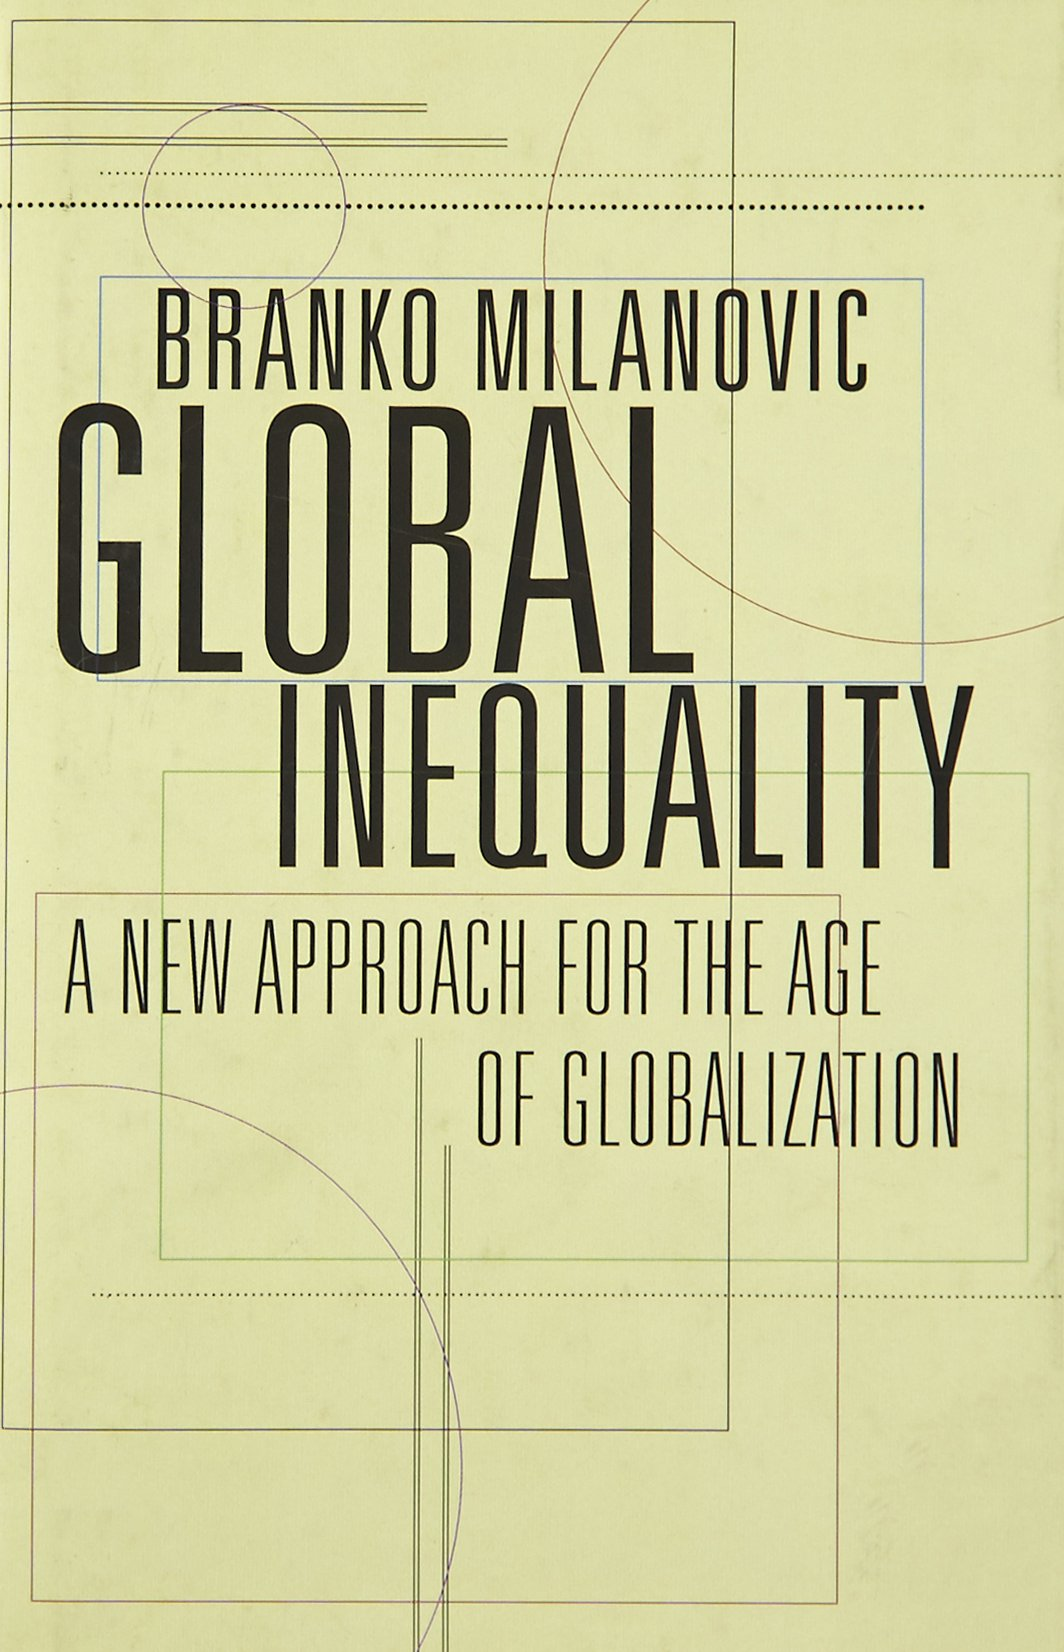 Global Inequality: A New Approach for the Age of Globalization.